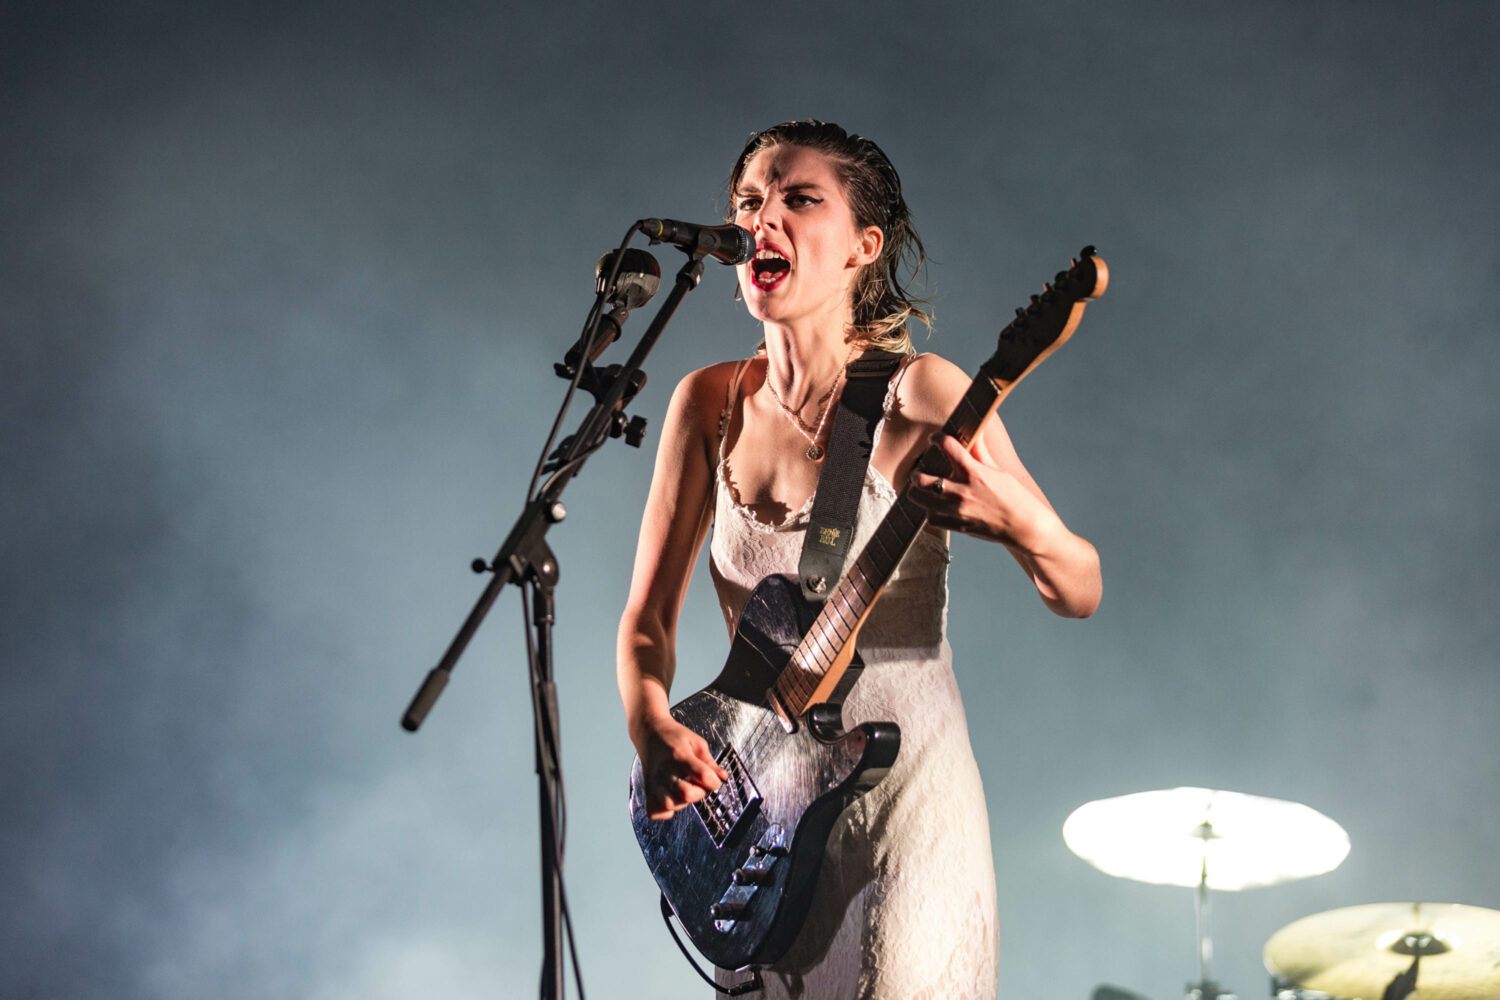 Wolf Alice, Jack White, The Big Moon and more are set for Mad Cool 2018